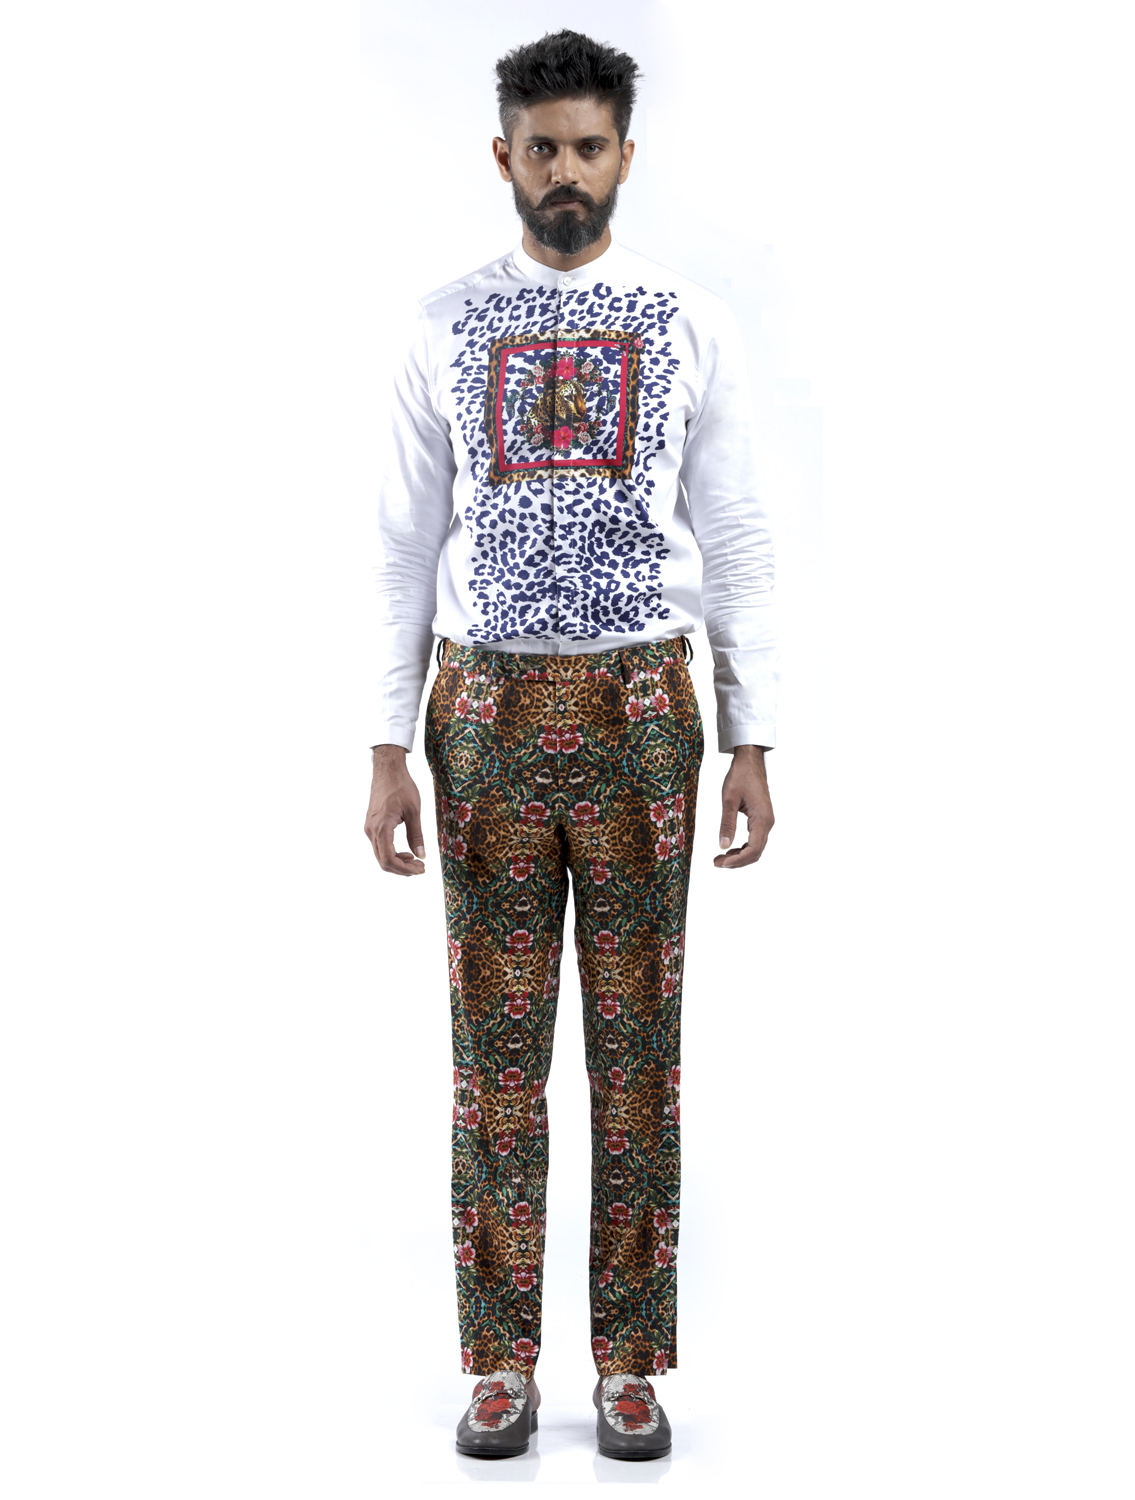 Stancis All-over Printed Pants